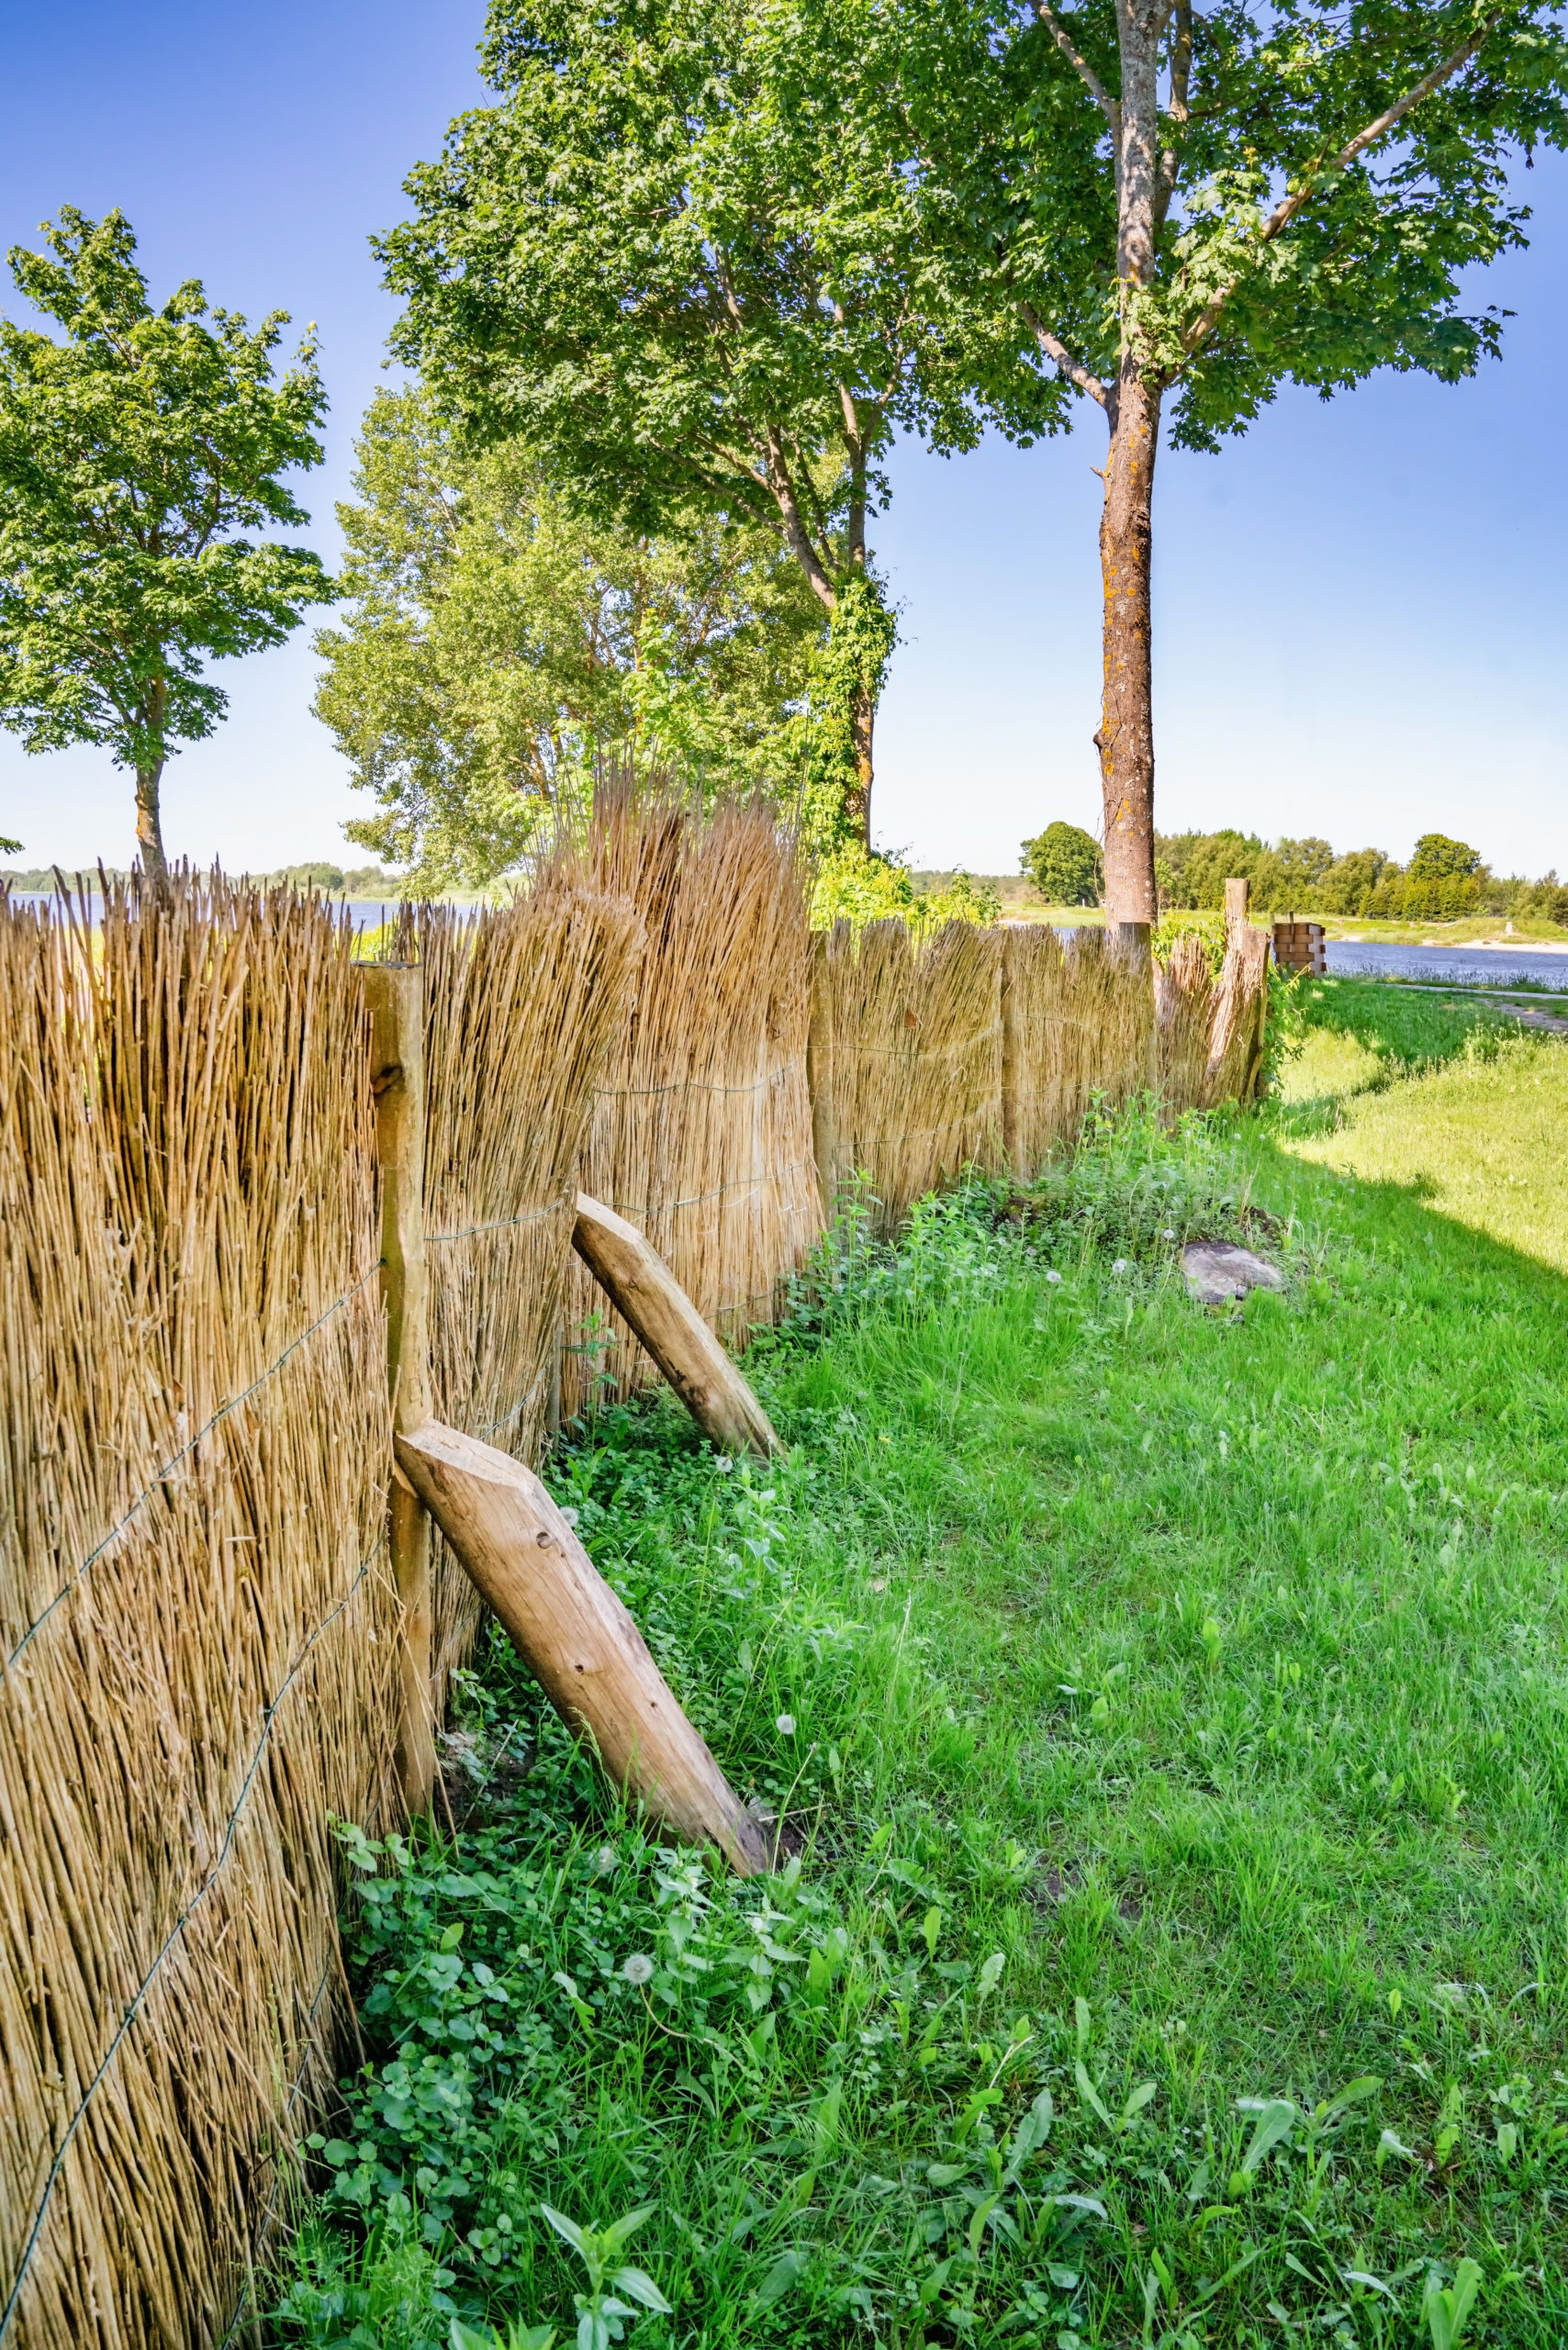 A reed fence enclosing a yard with grass and trees.